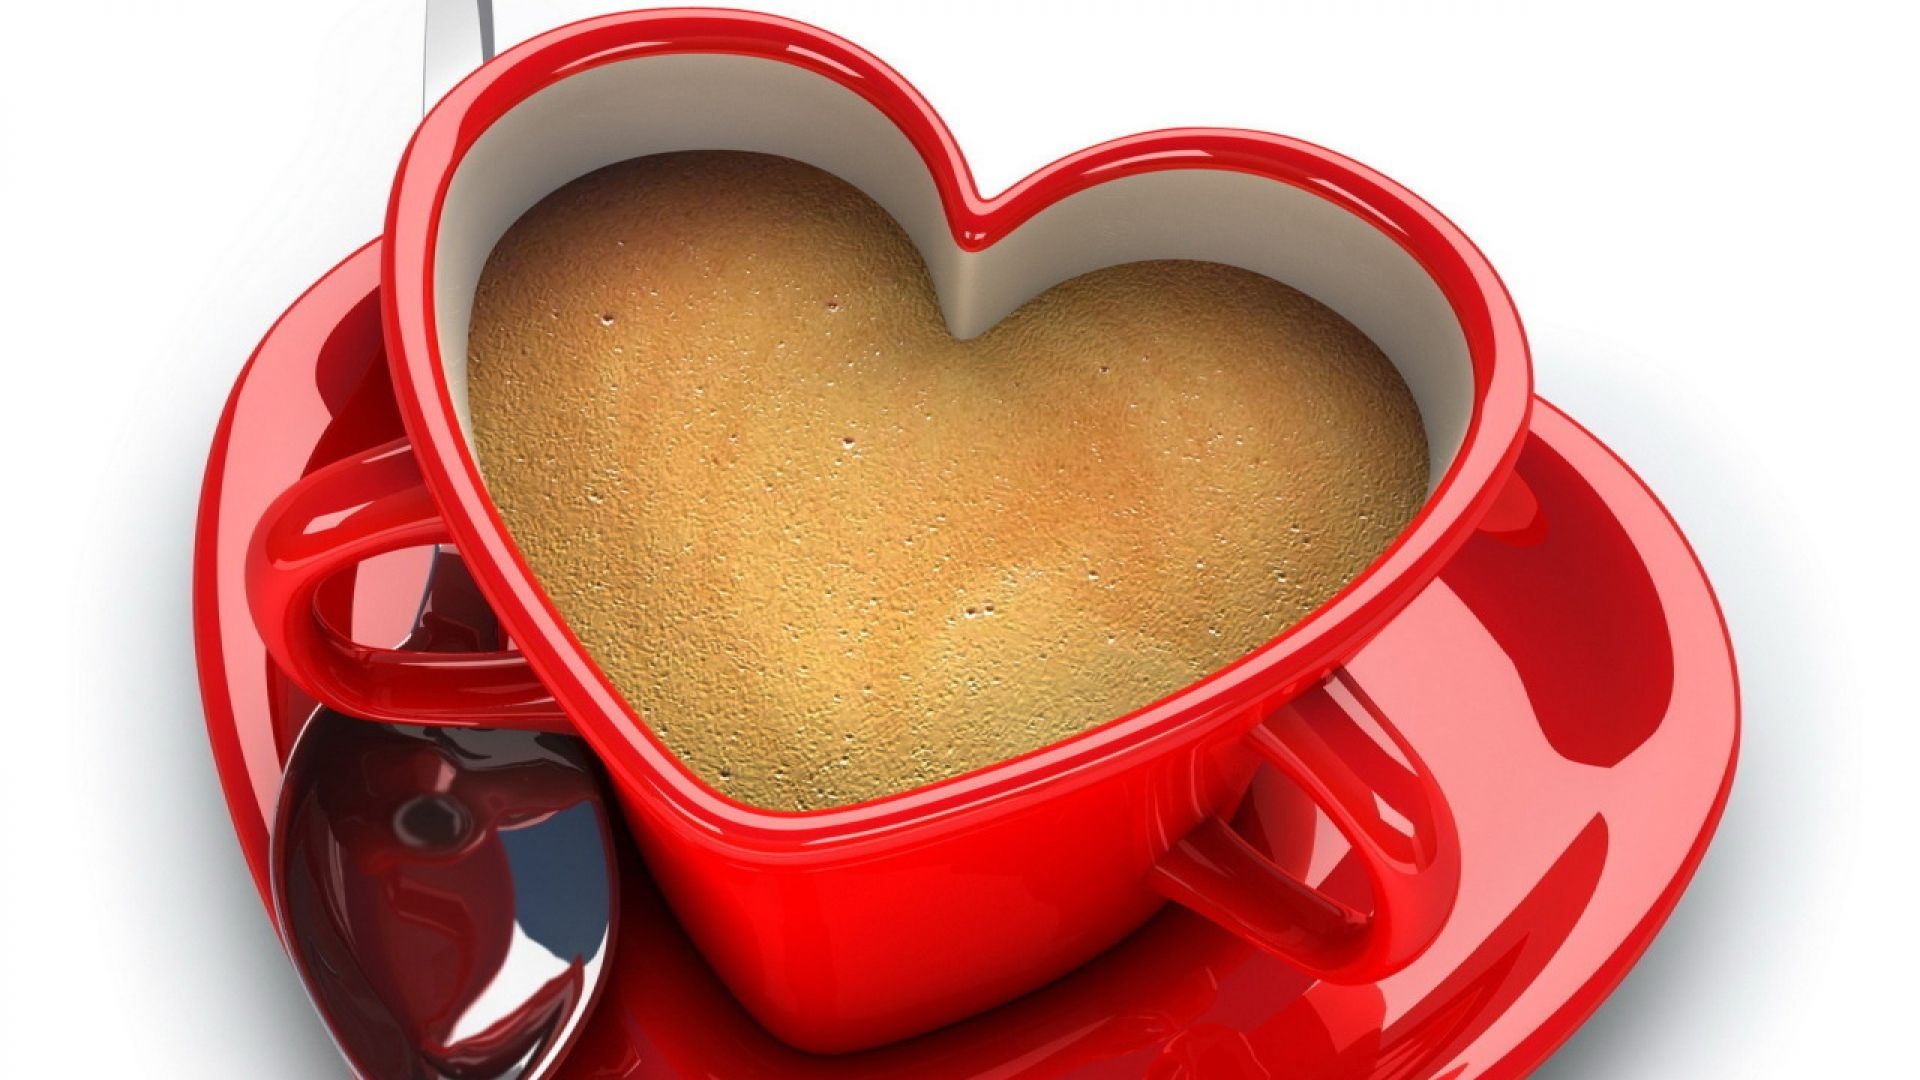 heart shaped coffee cup in red